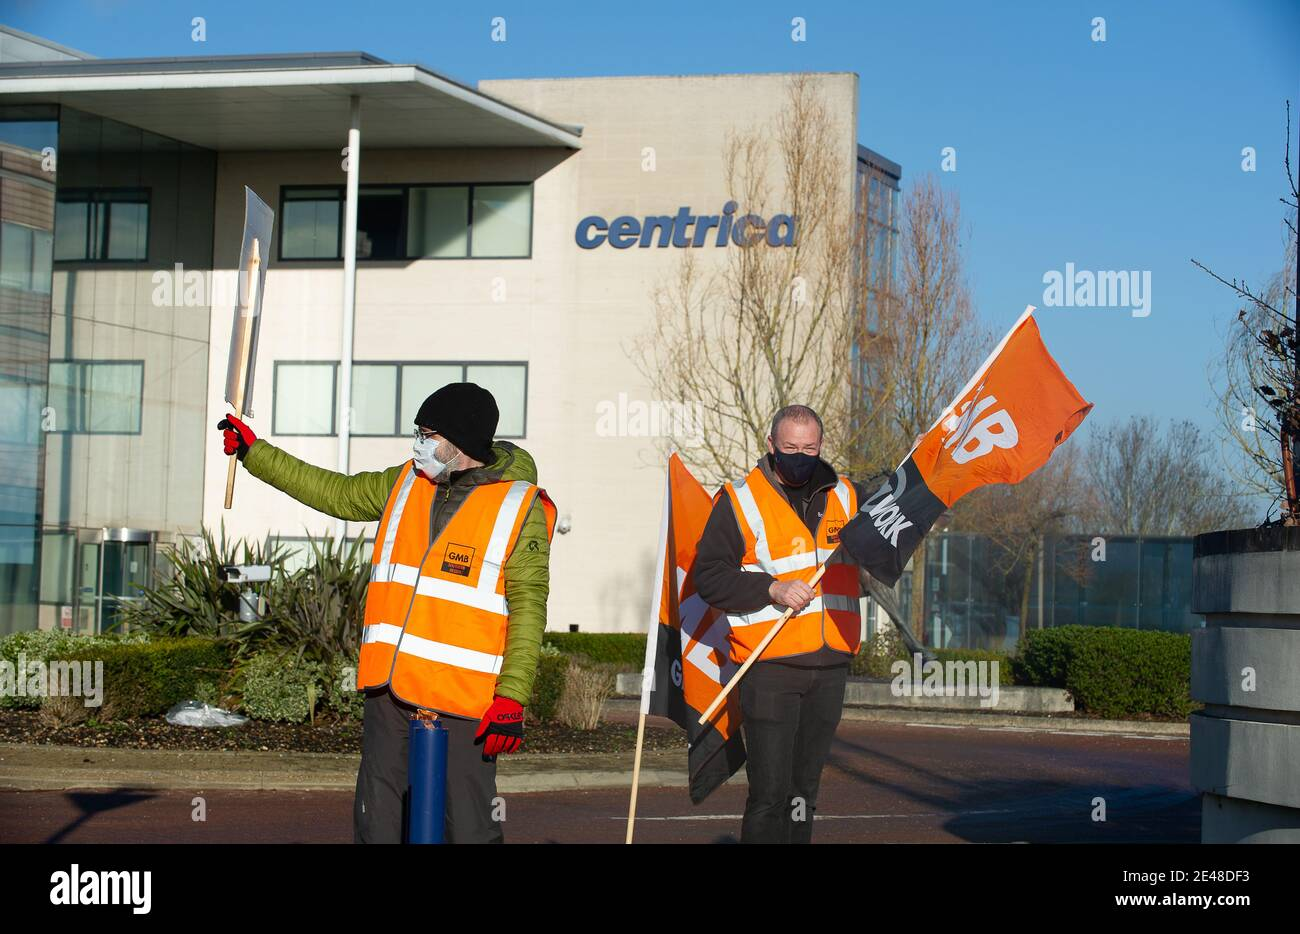 """Windsor, Berkshire, UK. 22nd January, 2021. Day six of the British Gas strike was 'rock solid' asan estimated 7,000 workers downed tools over thecompany'splanto sack them all. This morning British Gas Engineers burnt their """"sign or be fired"""" contracts outside the head office of parent company Centrica. British Gas engineers and staff voted overwhelminglyby 89% to strike after the boss of parent company Centrica Chris O'Shea, threatened to fire them all if they didn't""""accept""""cuts to pay and terms and conditions.Credit: Maureen McLean/Alamy Live News Stock Photo"""